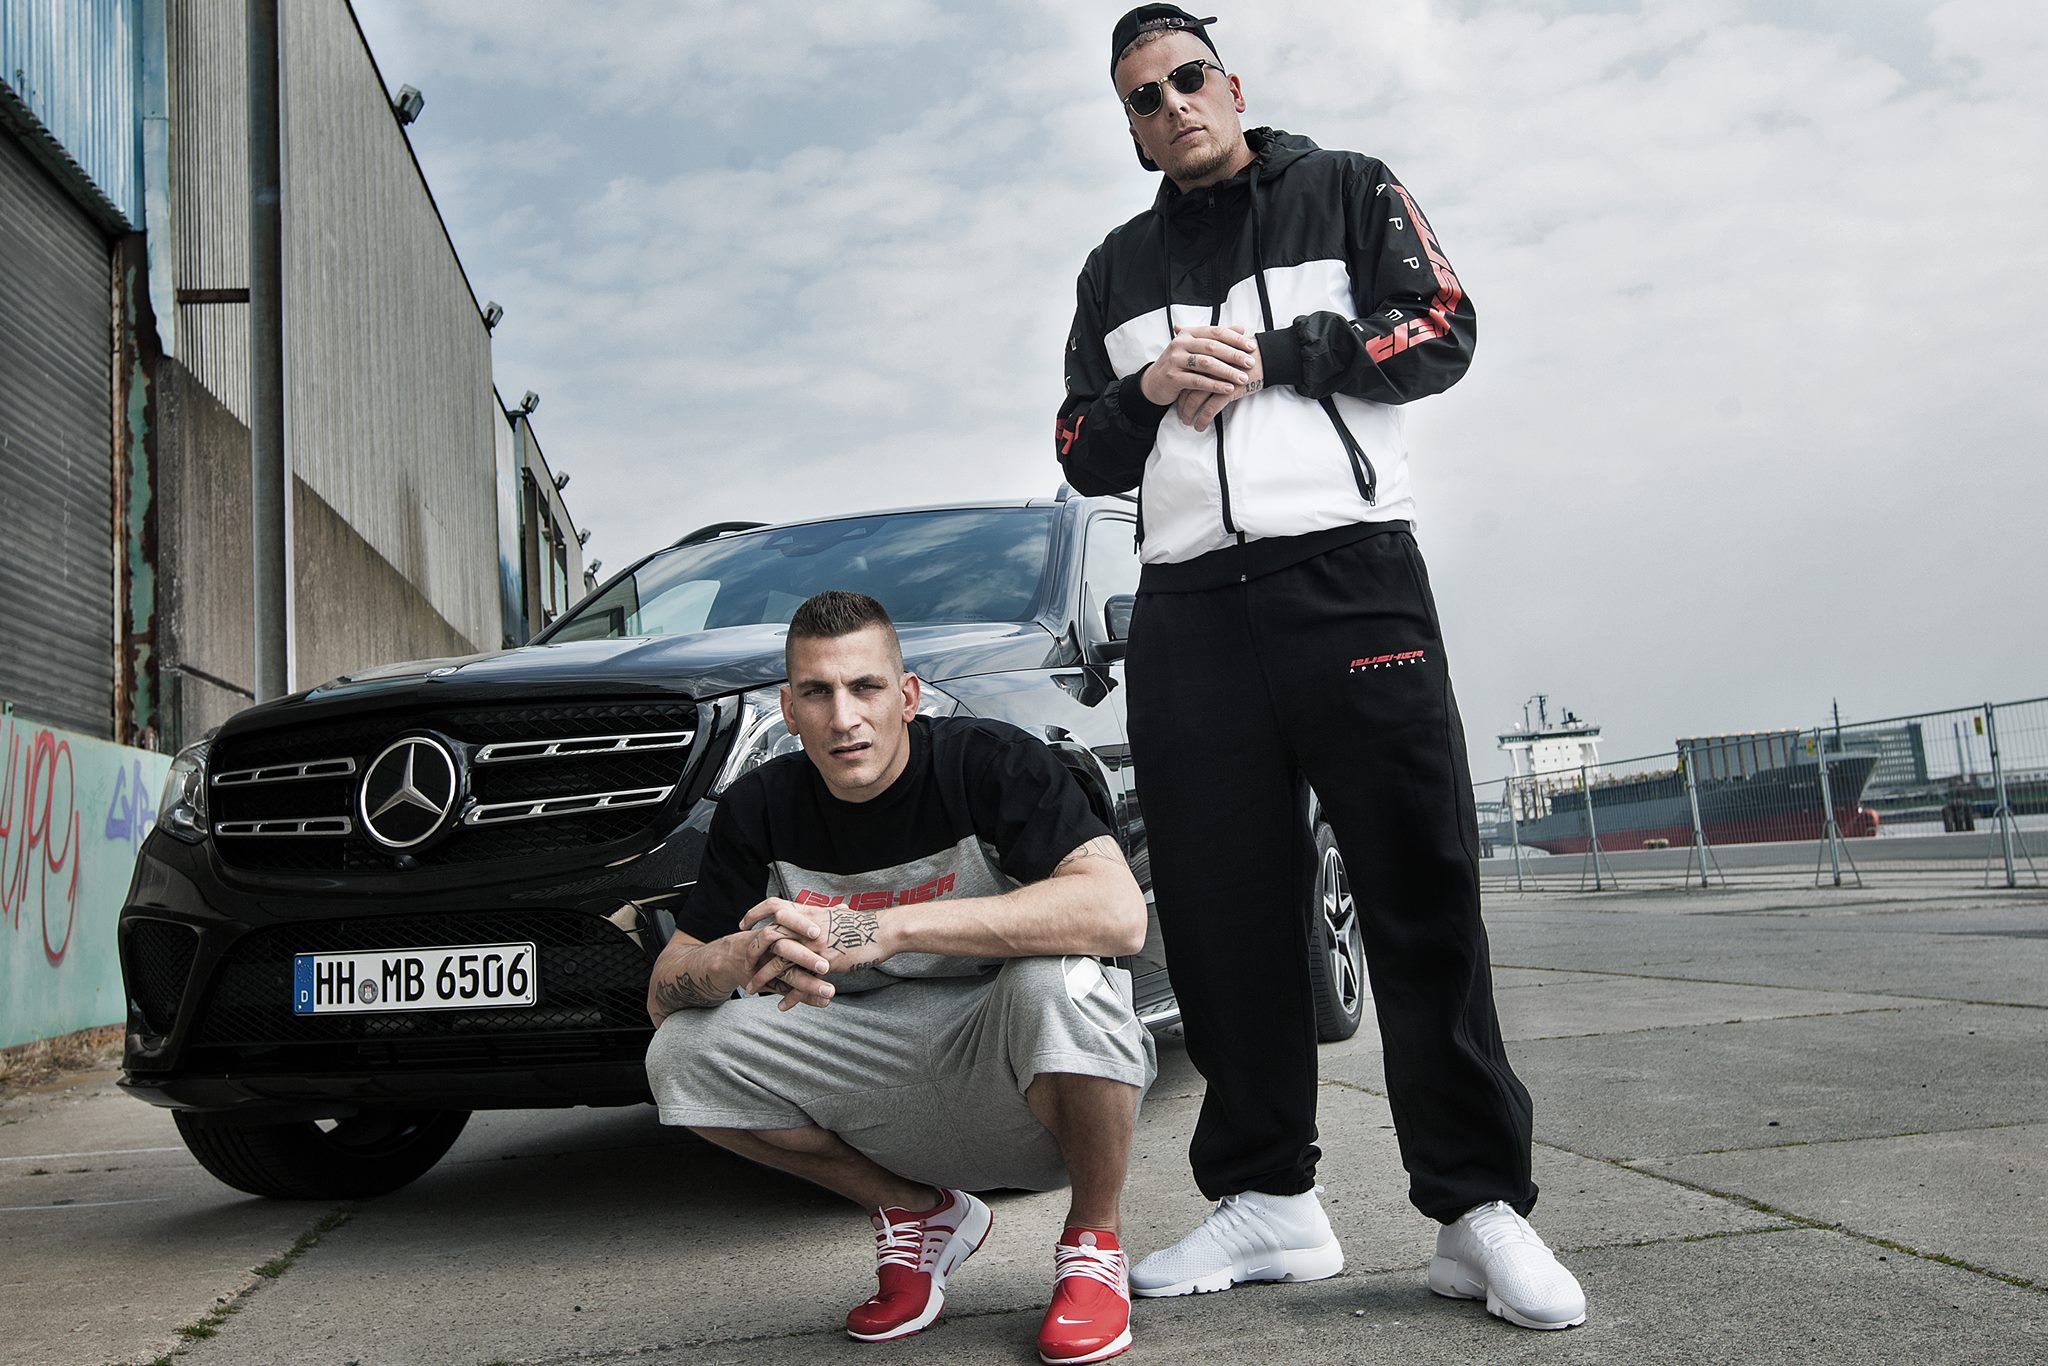 Gzuz (left) and Bonez MC (right), major members of 187 Strassenbande